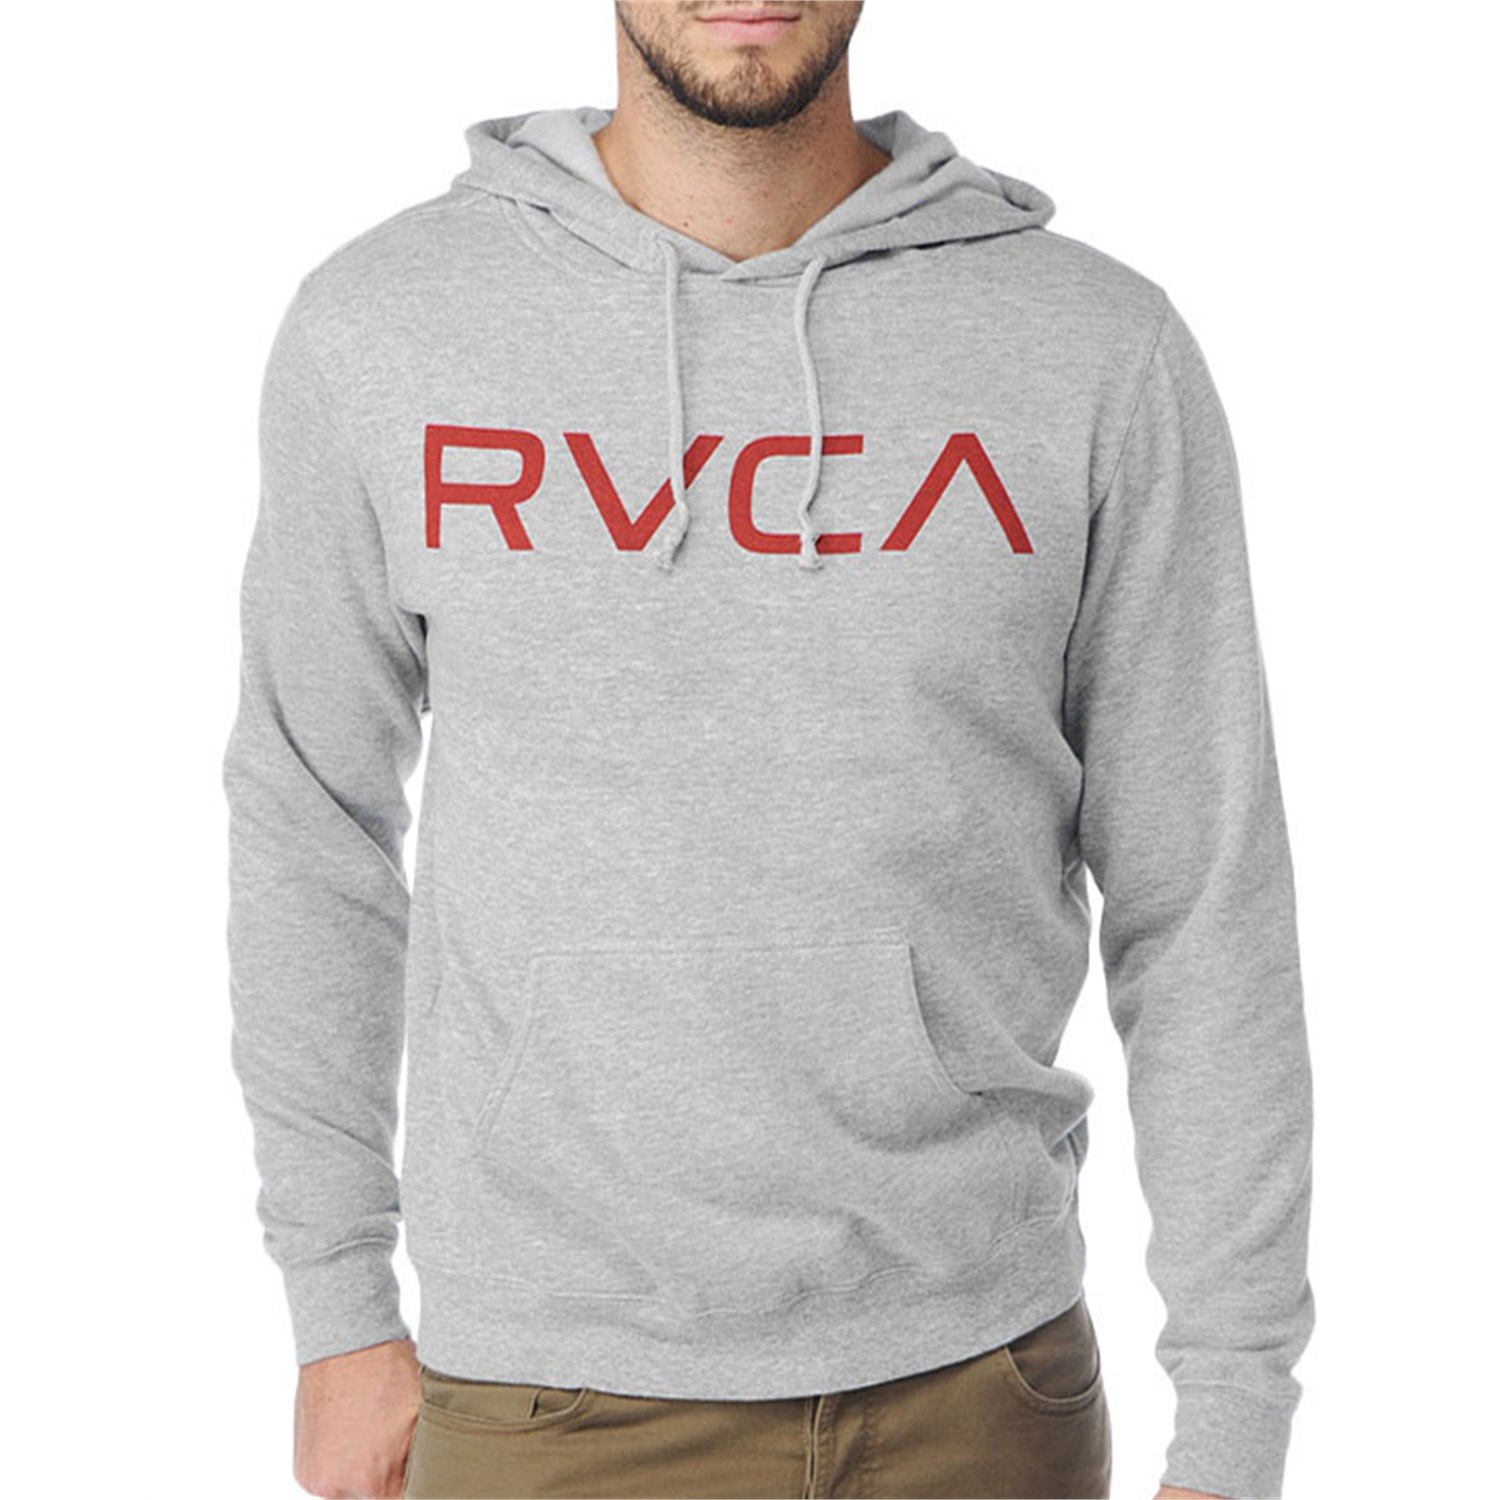 Rvca pullover hoodie